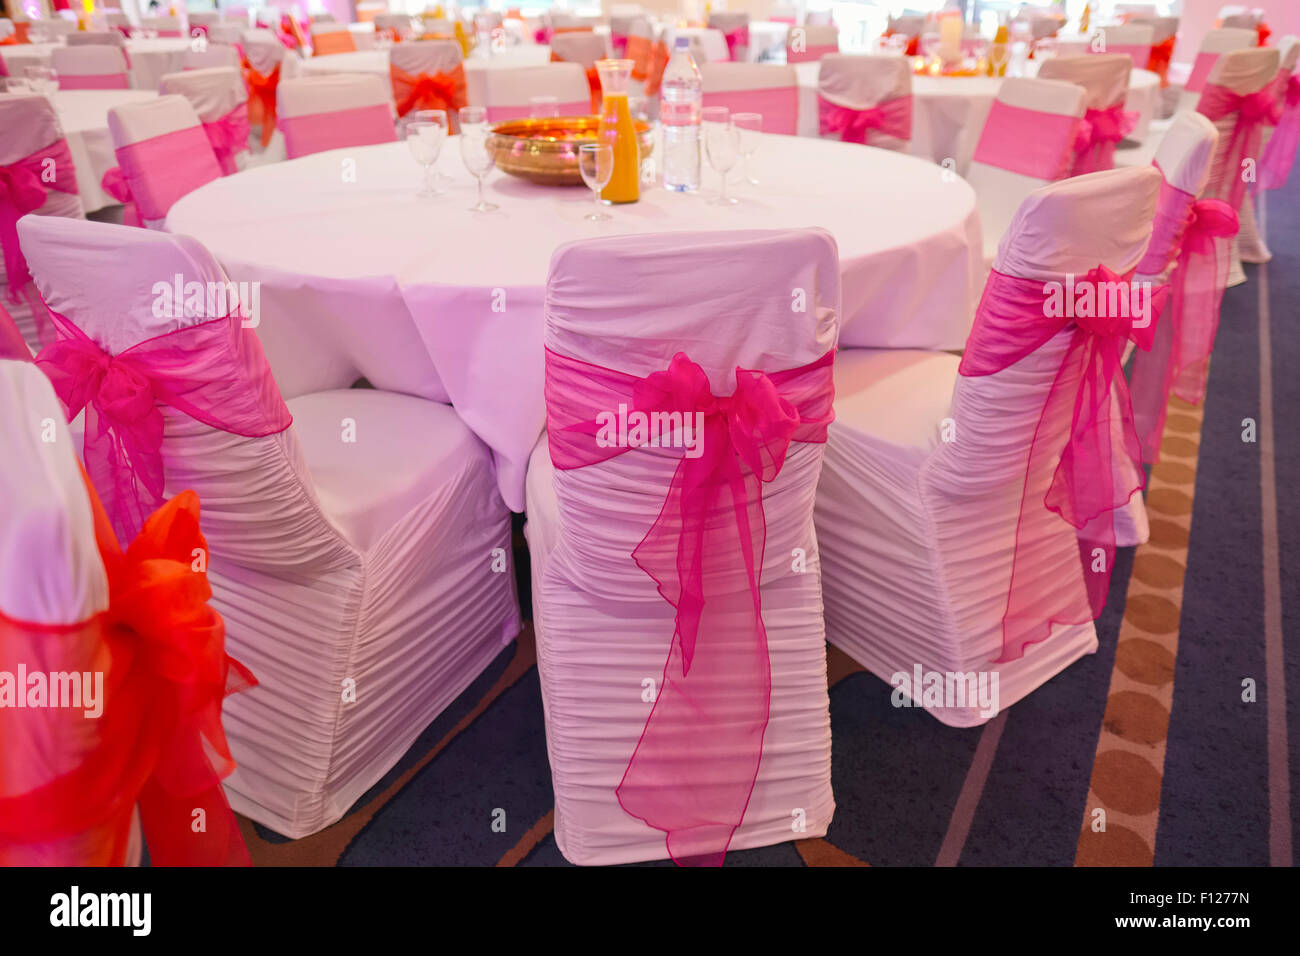 Chairs with Bows at Hotel Wedding Reception - Stock Image & Empty Wedding Reception Room Stock Photos u0026 Empty Wedding Reception ...